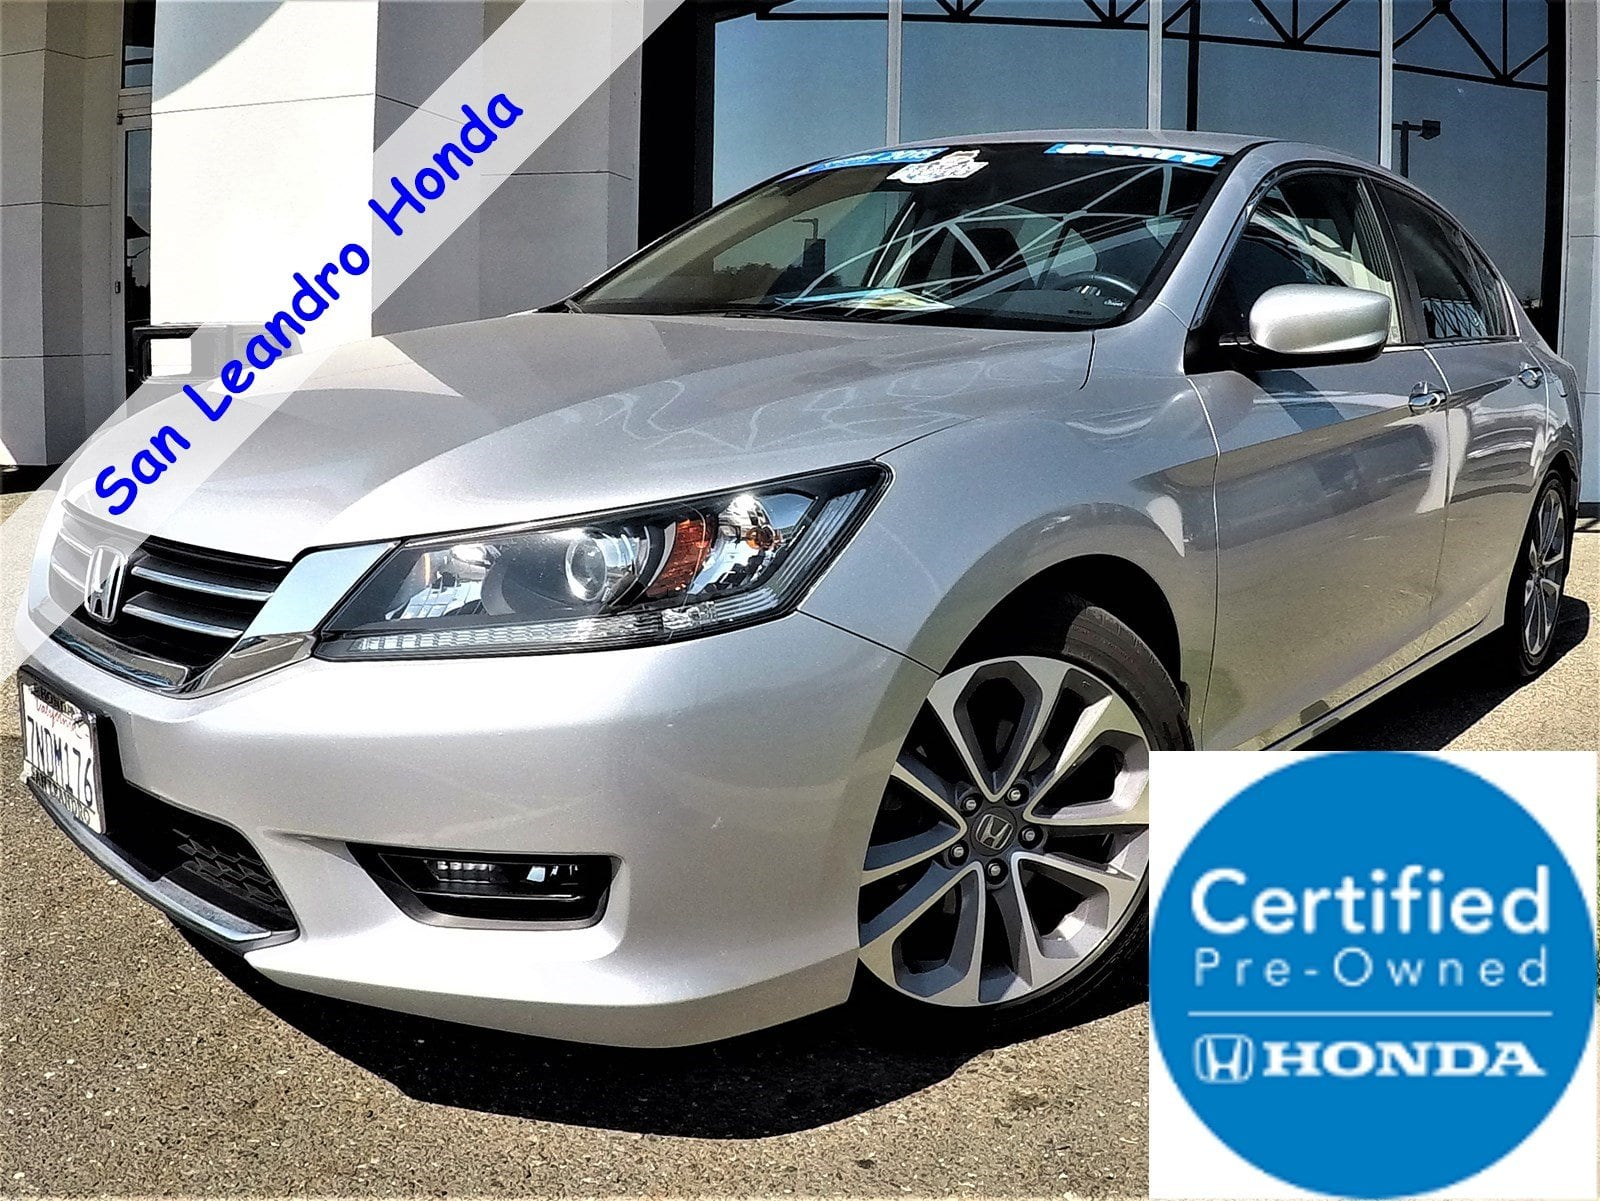 Used Cars for Sale Near Me Honda Accord Awesome Used Honda Inventory for Sale In Bay area Oakland Alameda Hayward